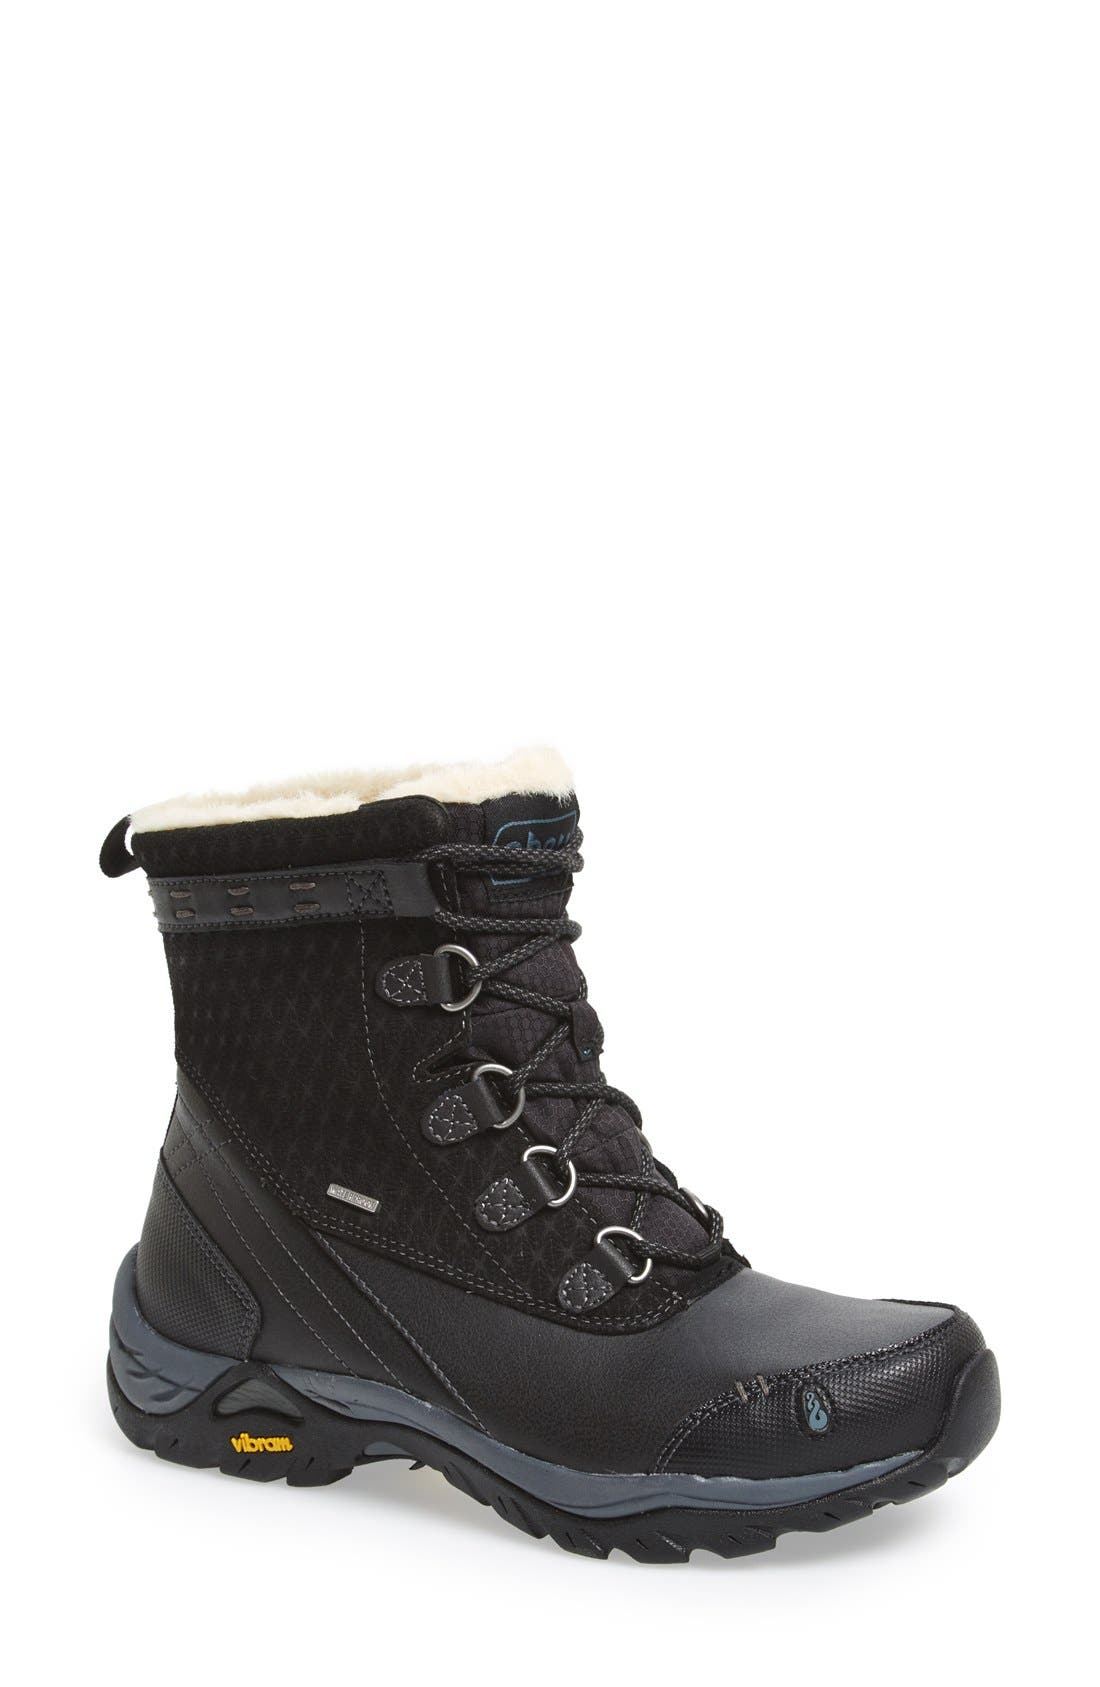 'Twain Harte' Insulated Waterproof Boot, Main, color, 001